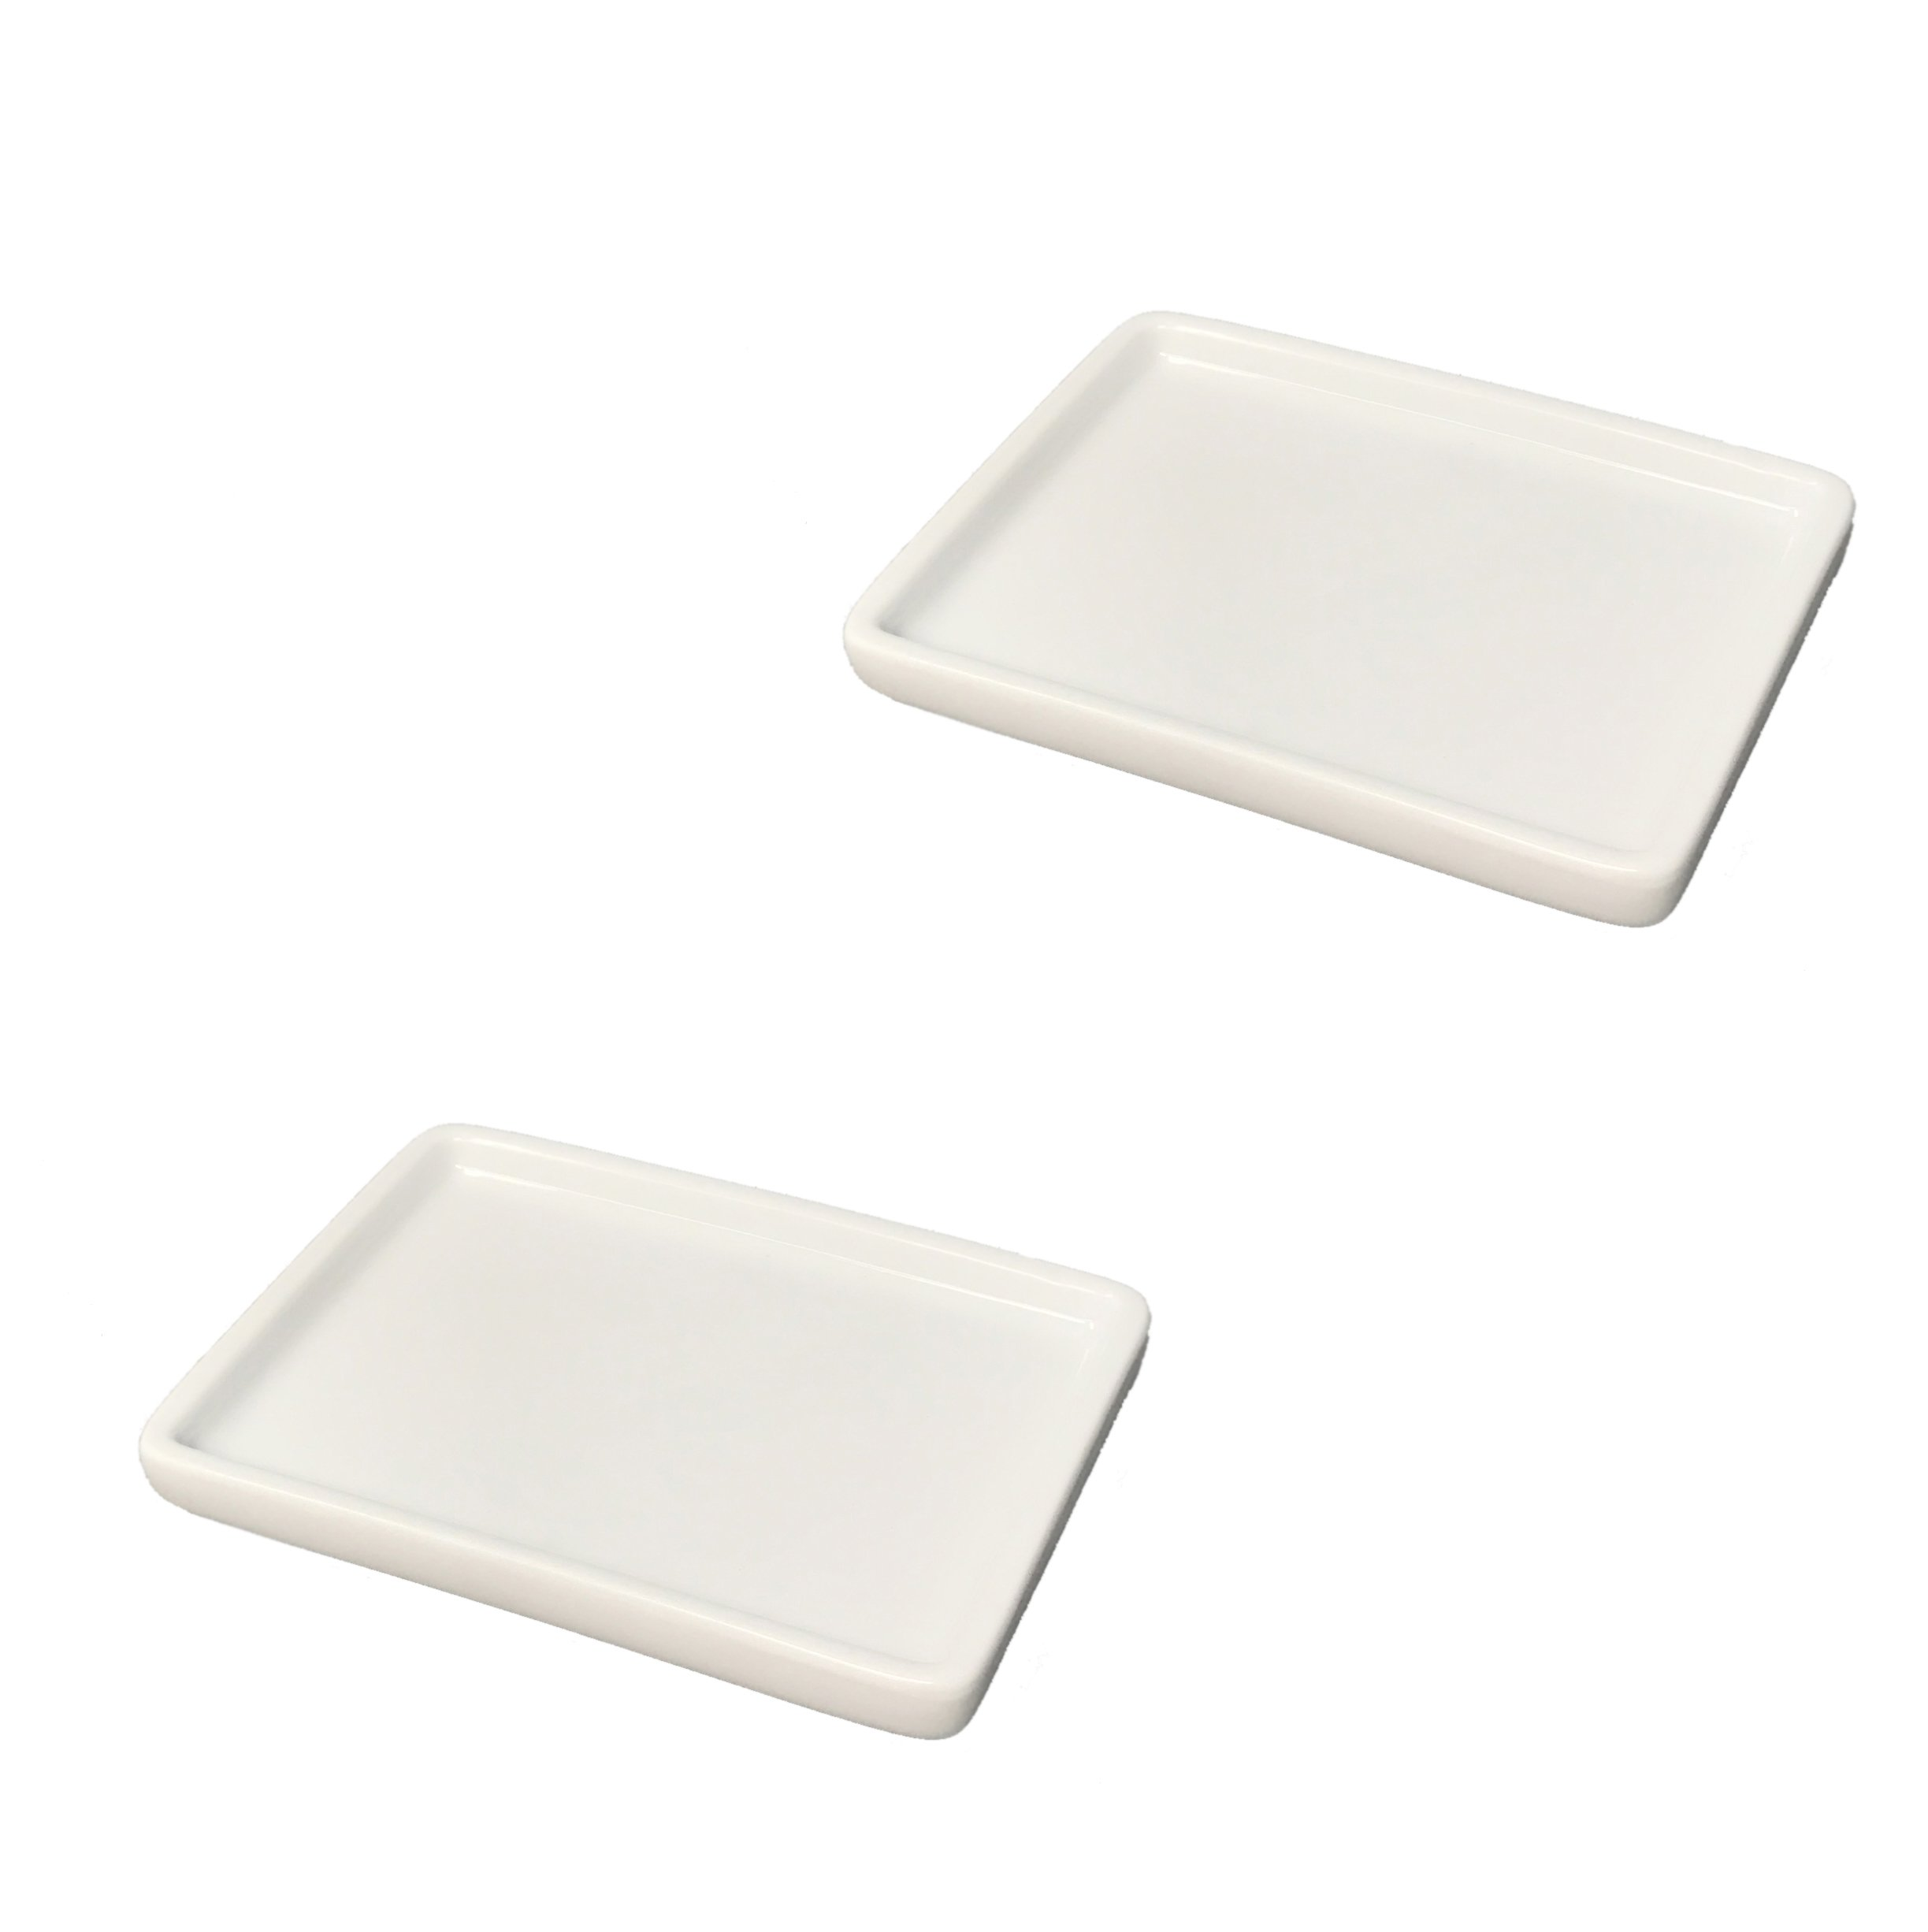 Tetra-Teknica Less is More Series SD-2P Porcelain Soap Dish, Color White, 2 per Pack by Tetra-Teknica